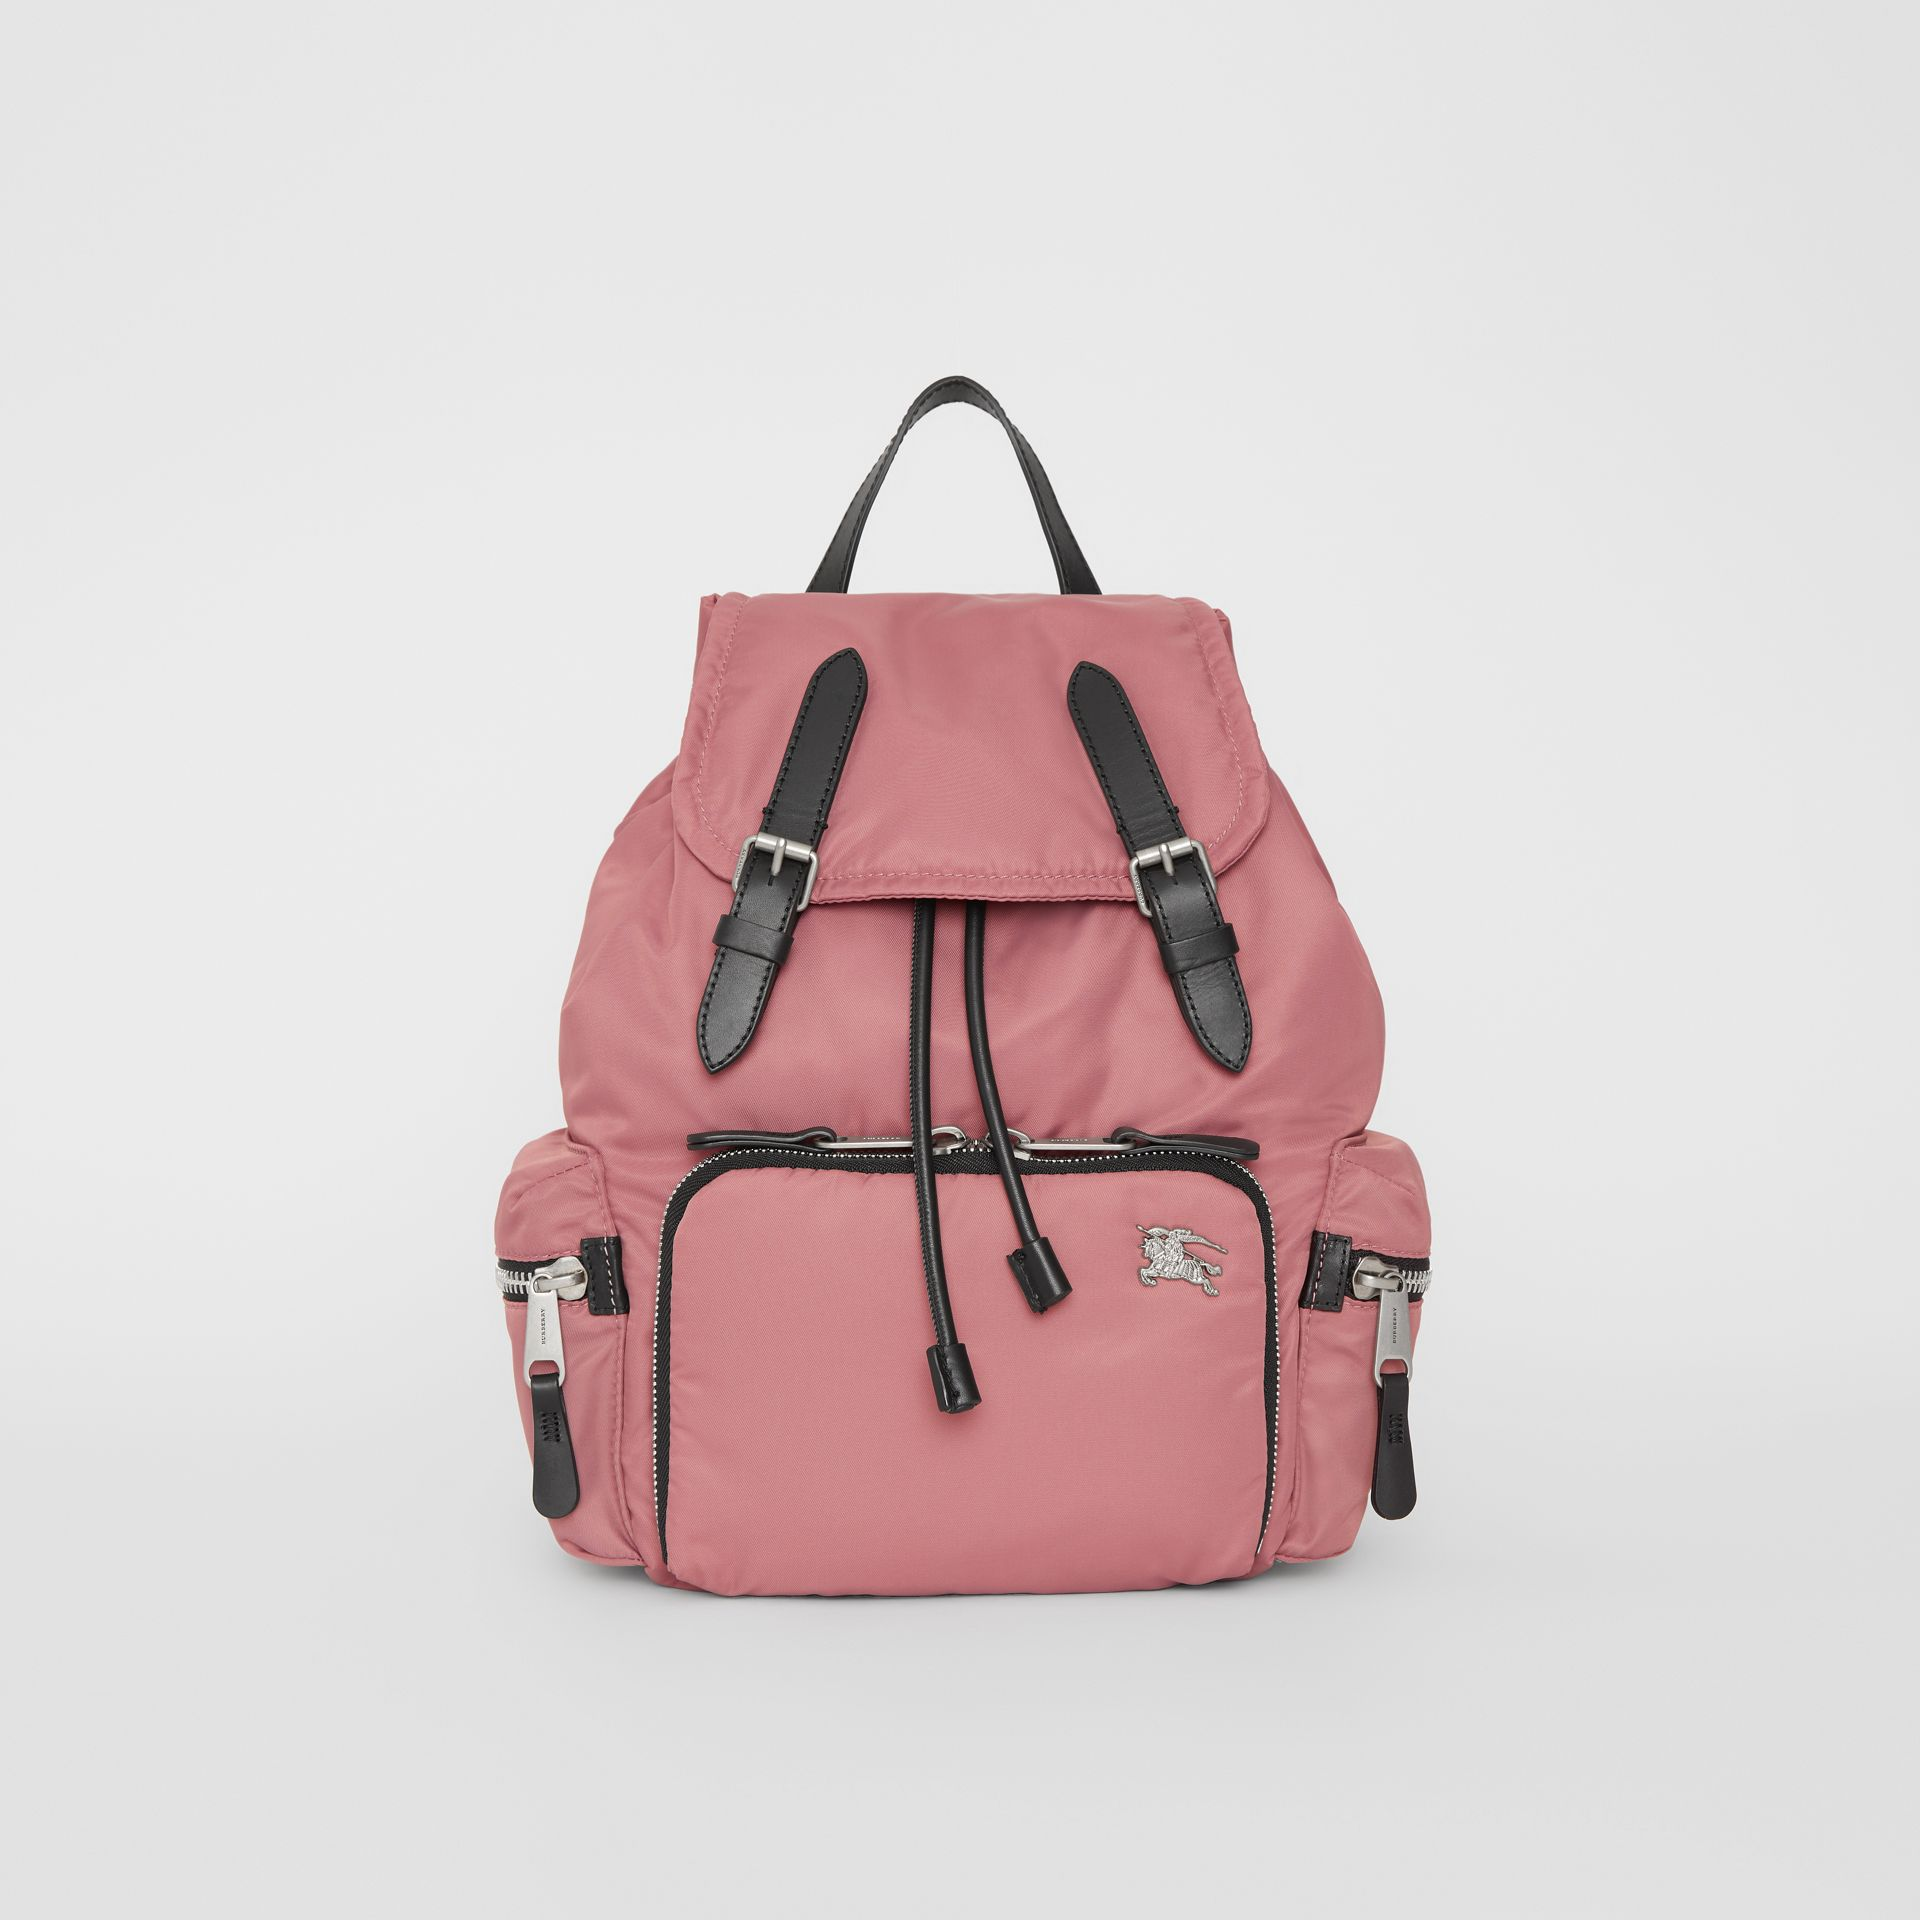 Sac The Rucksack moyen en nylon matelassé et cuir (Rose Mauve) - Femme | Burberry - photo de la galerie 0